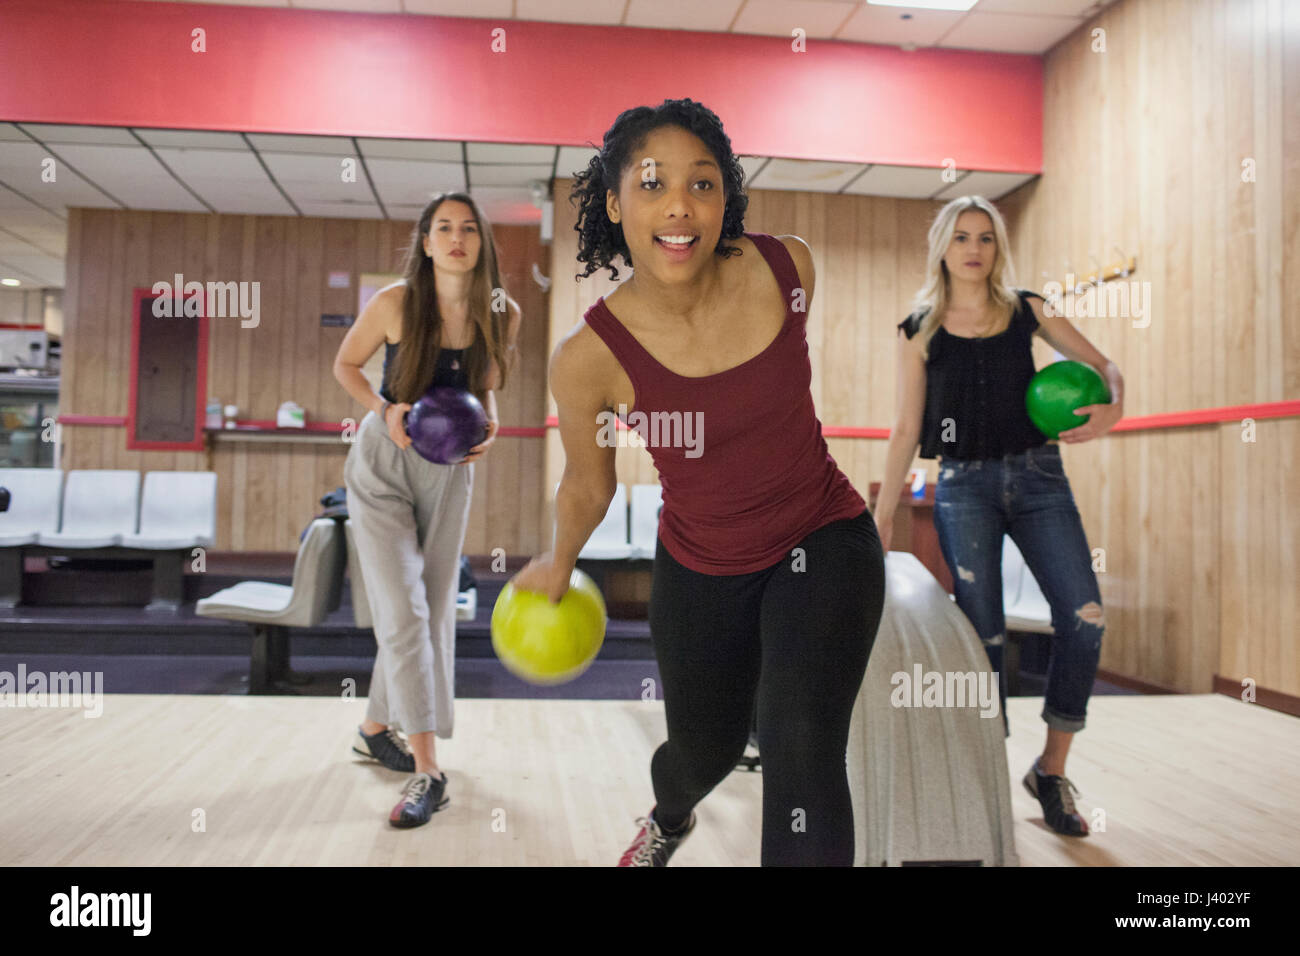 A young woman bowling with friends. - Stock Image